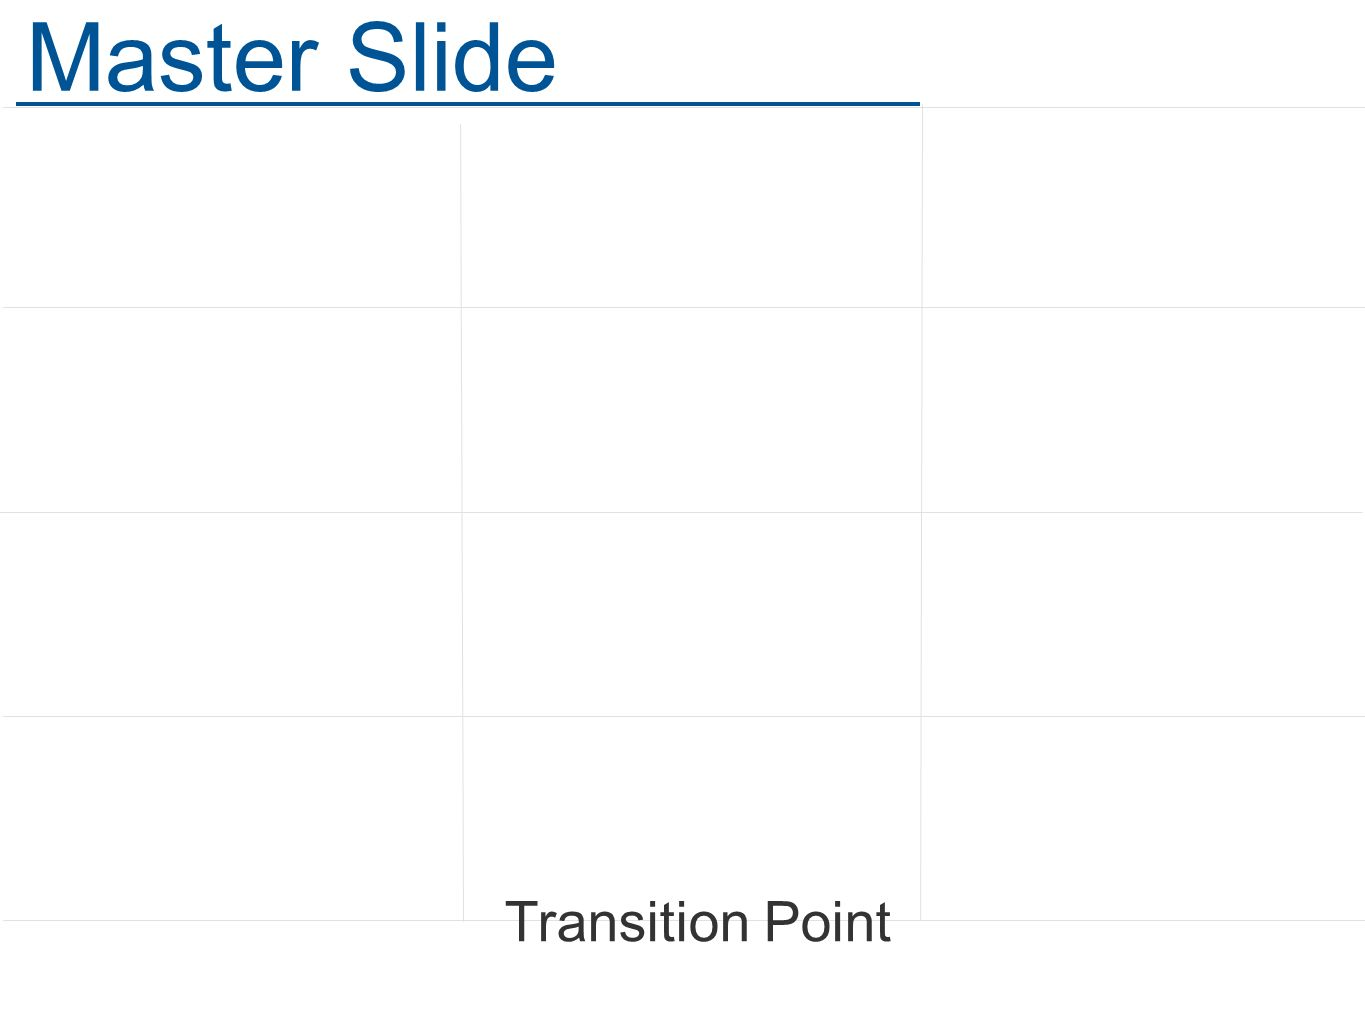 Transition Point Master Slide